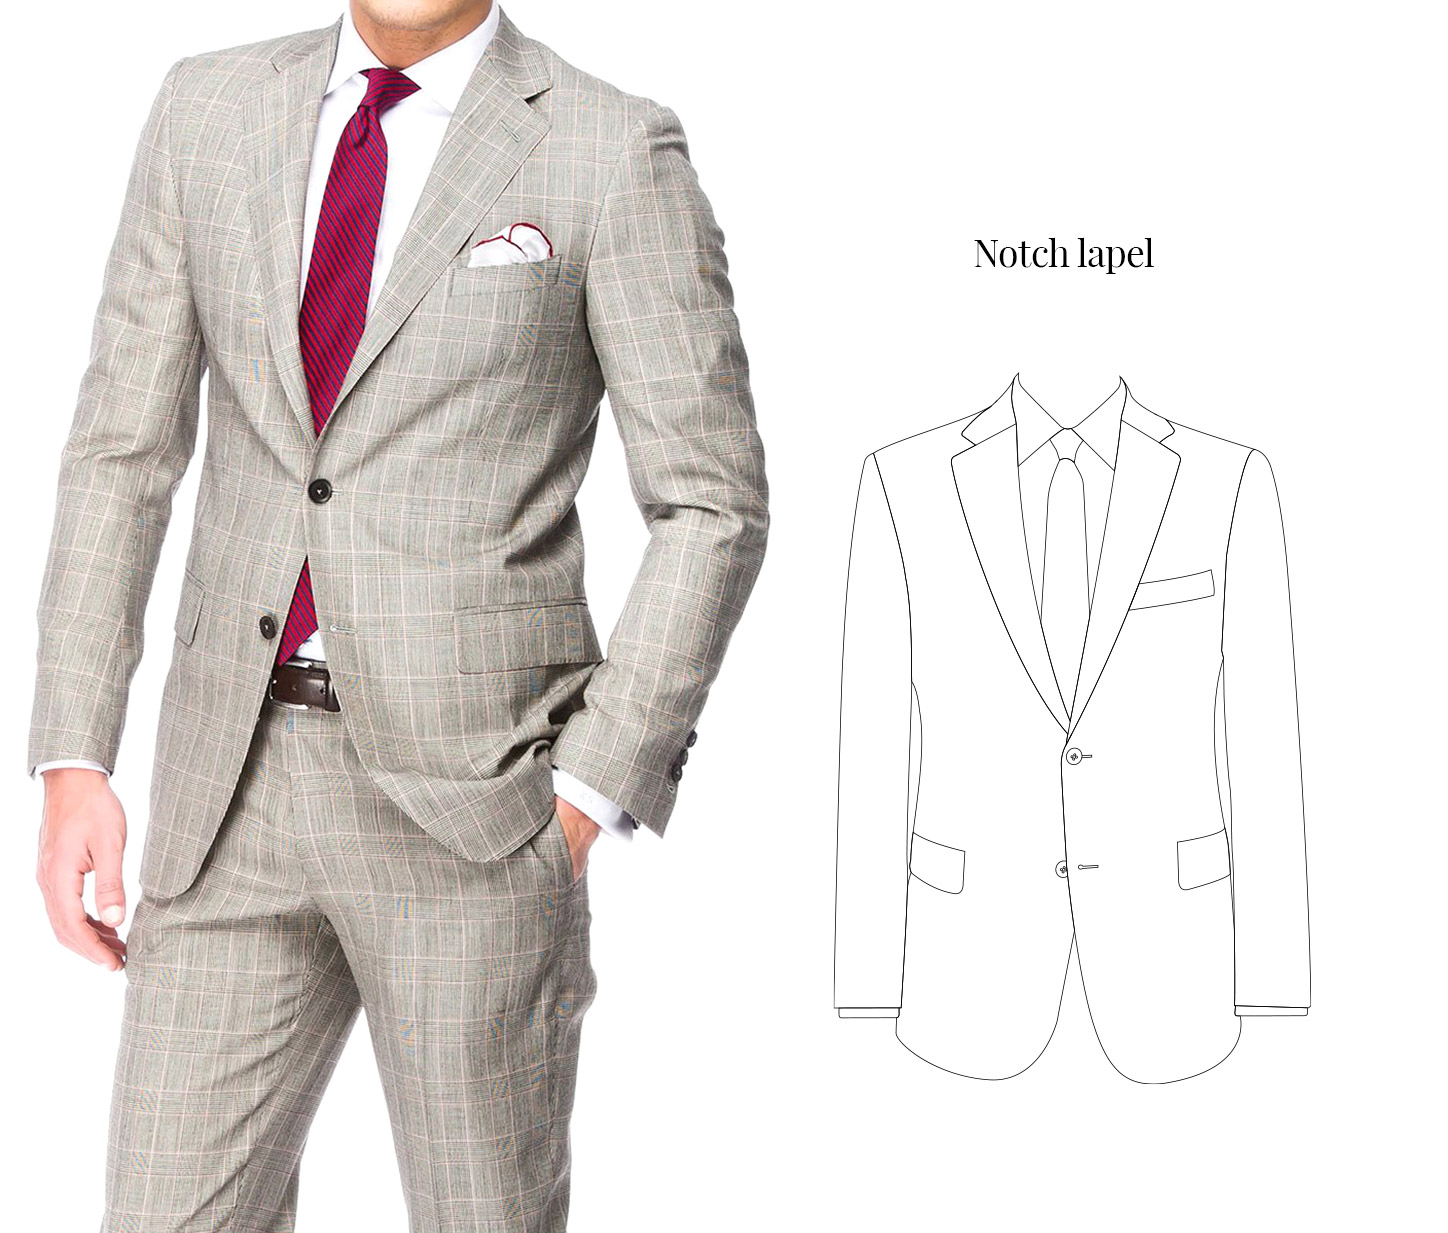 notch-lapel